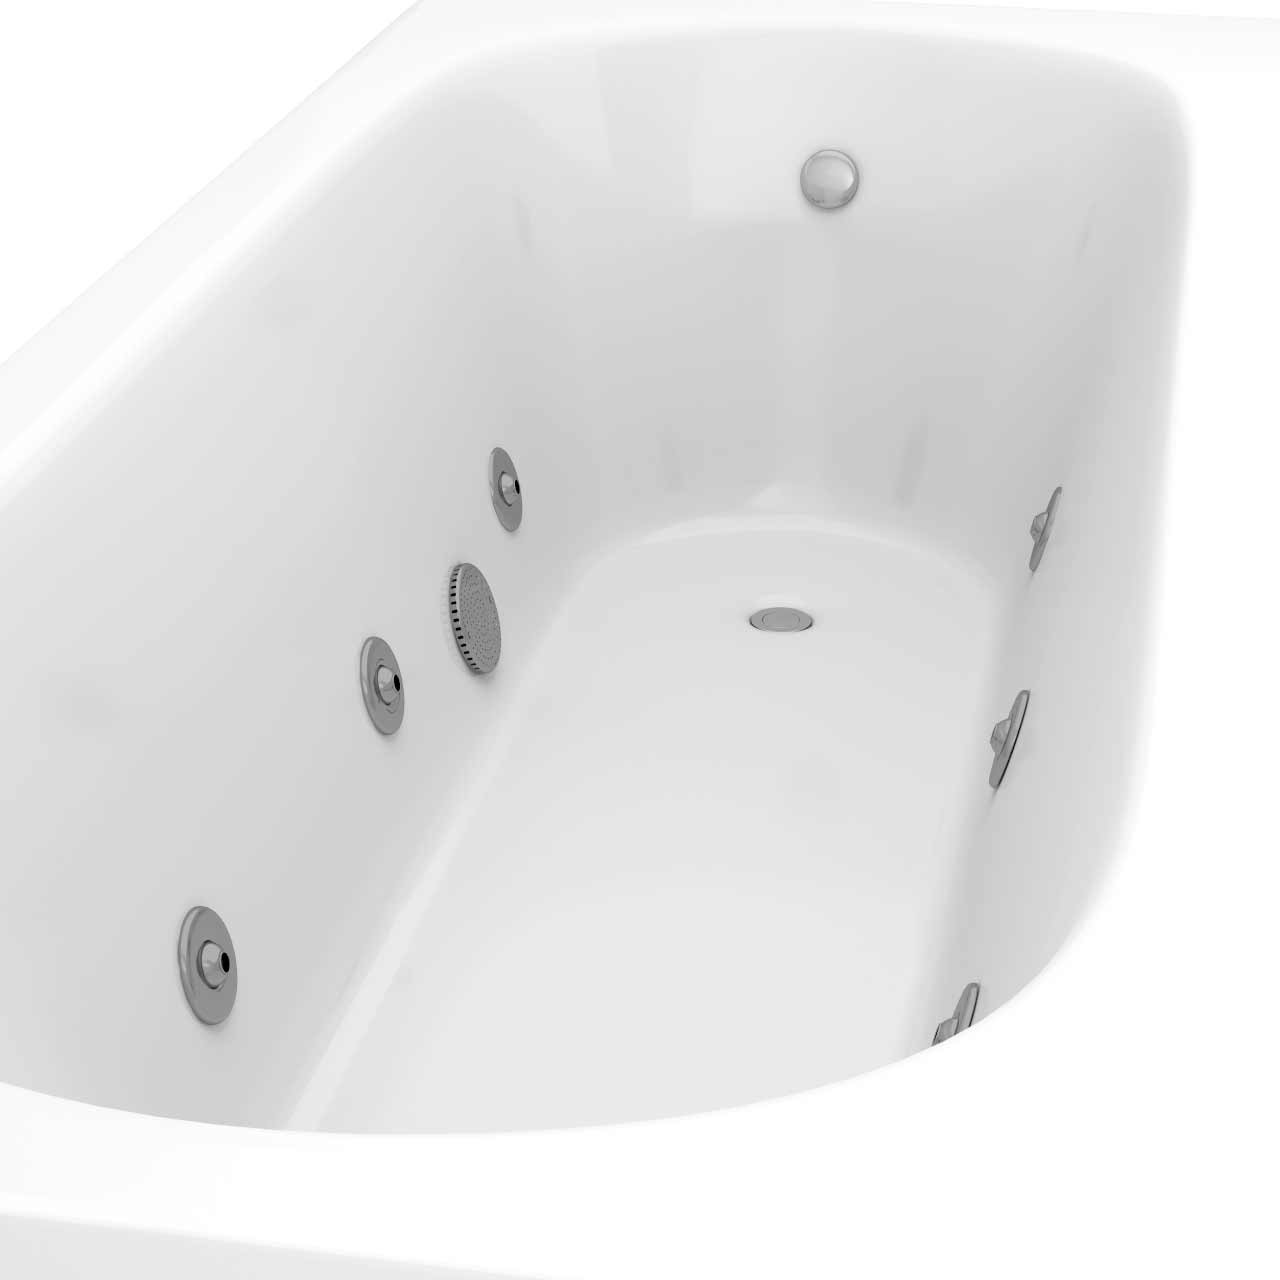 Compact End Tap 6 Jet Chrome V-Tec Whirlpool Bath 1700x700